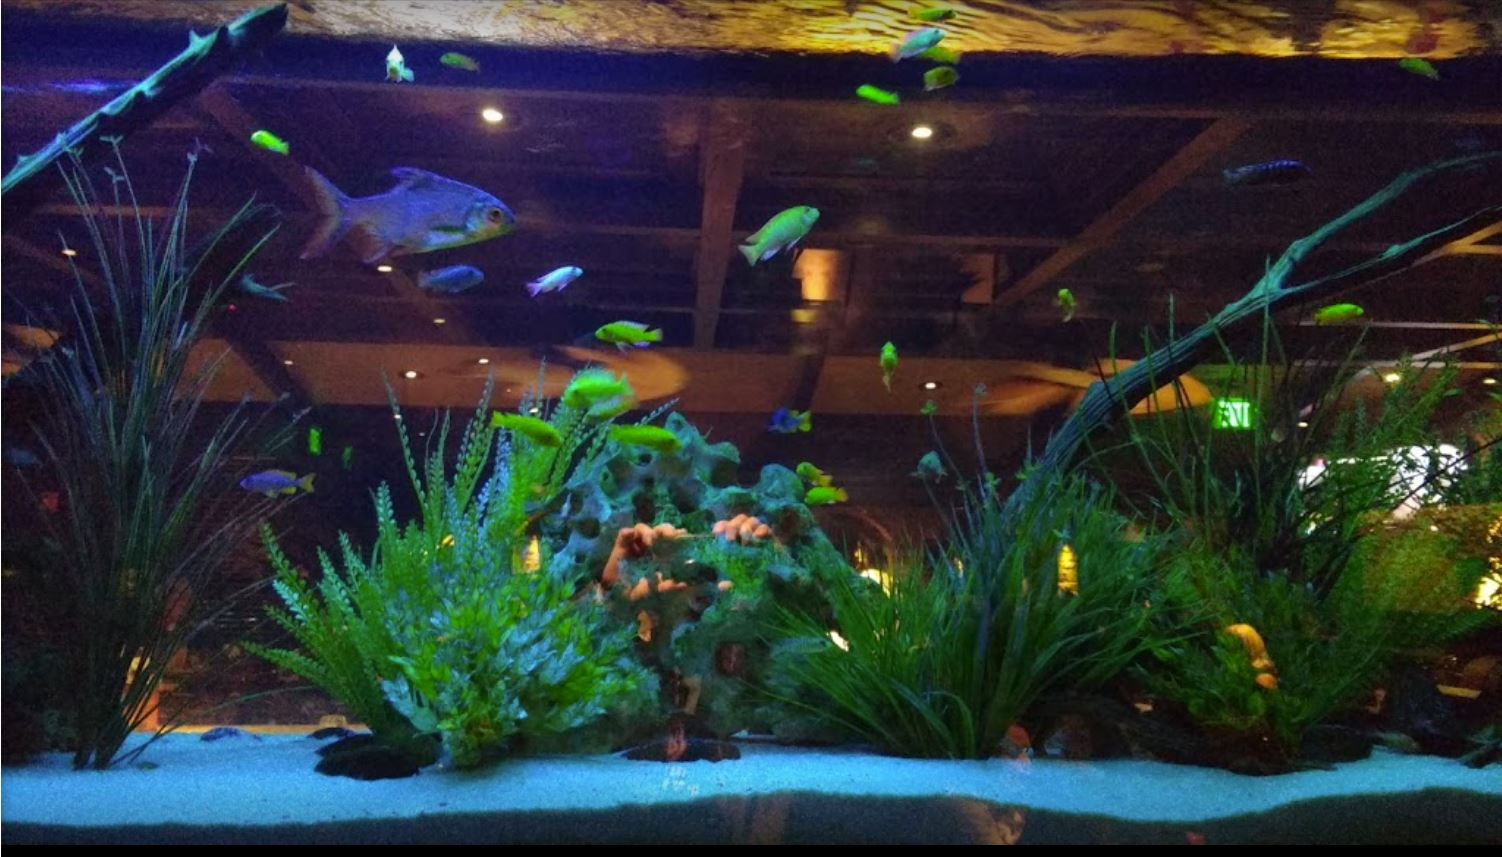 Impress your clients with a squeaky-clean aquarium